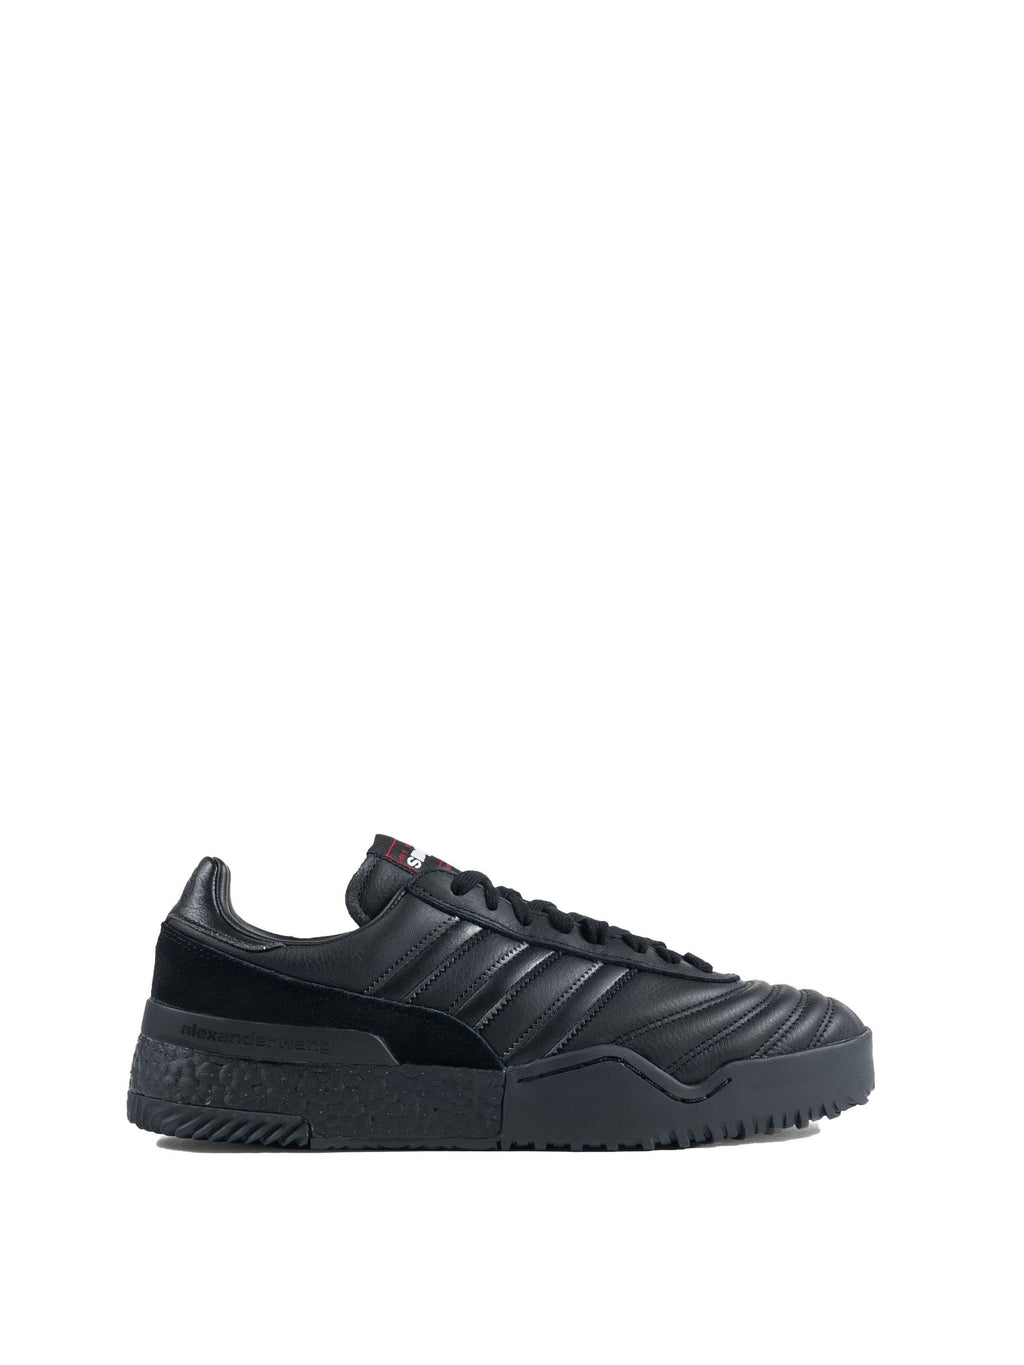 Black Alexander Wang Bball Soccer Shoes